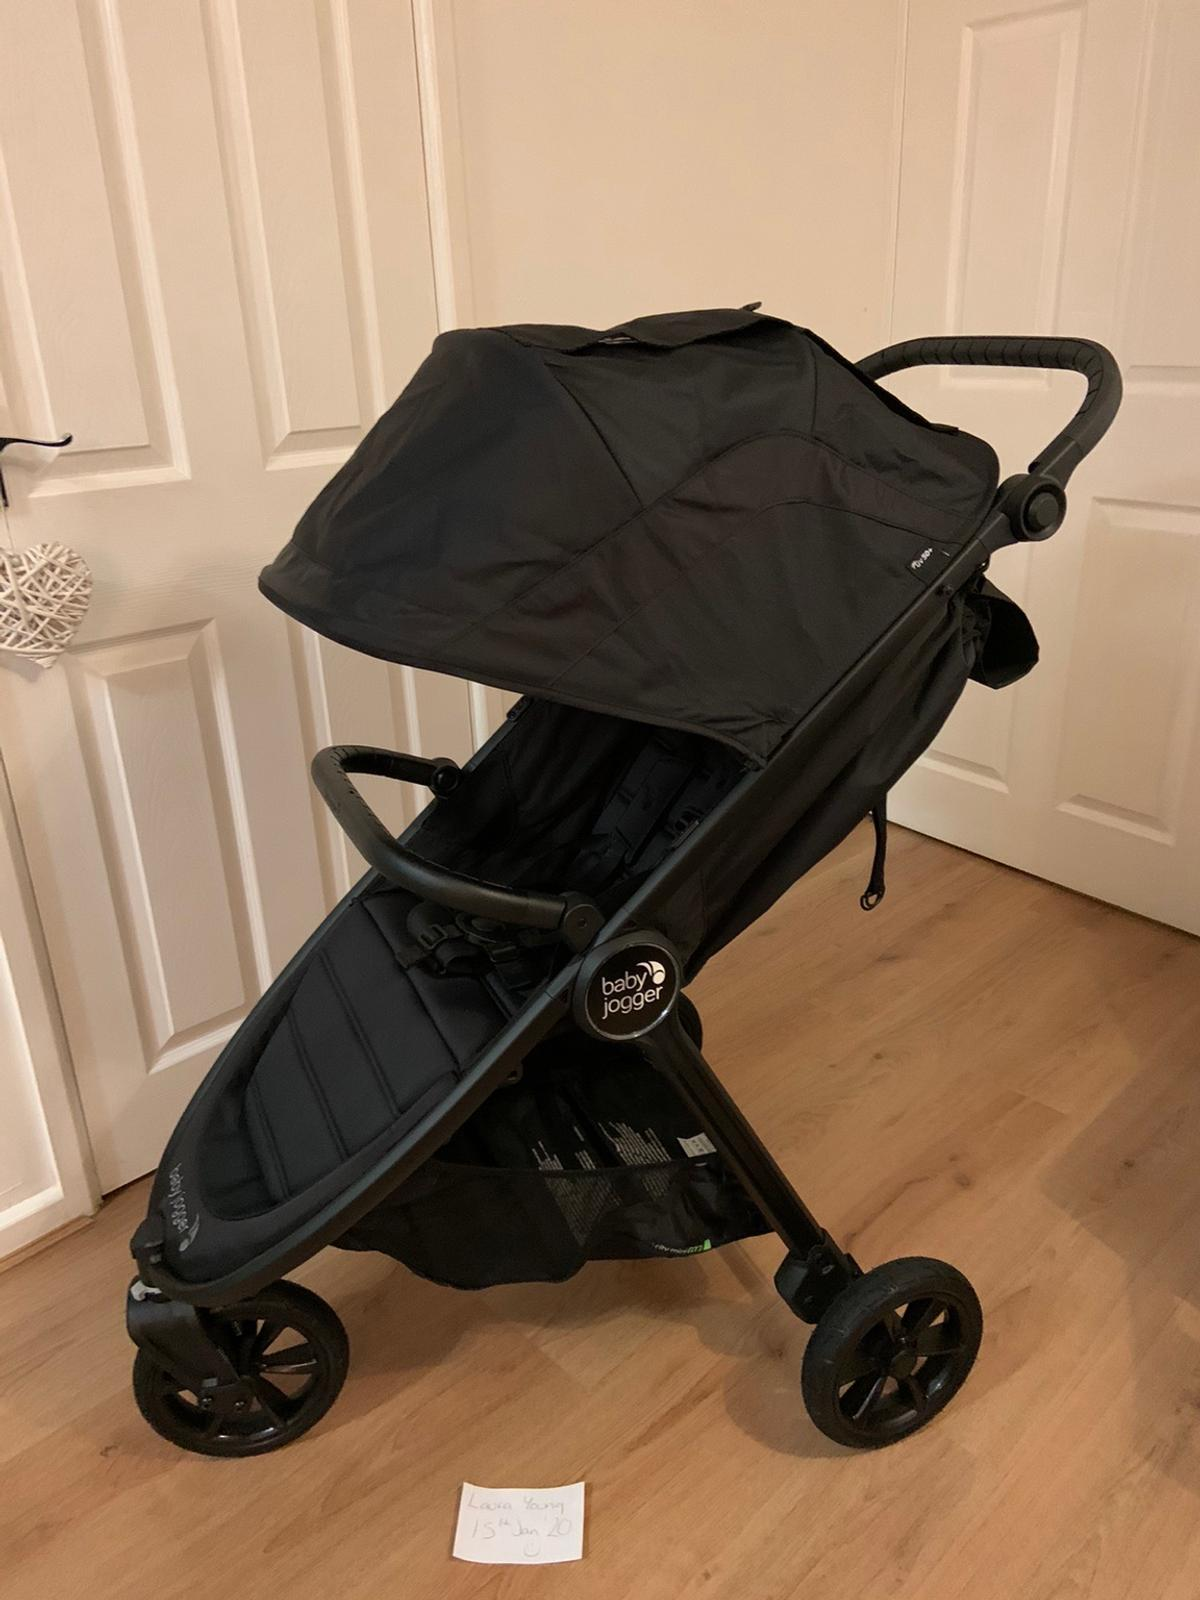 Reluctantly selling my 6 week old GT2😭I've used it probably 4 times. My daughter just wants to walk everywhere so I may as well let someone else get use out of it. It looks brand new still. Bumper bar included, raincover never purchased but a genetic off eBay fits better than the BJ one. I have a red/white star buggy snuggle I'm happy to chuck in with the sale 😬 Looking for around £300ono. Can post as I have the box.